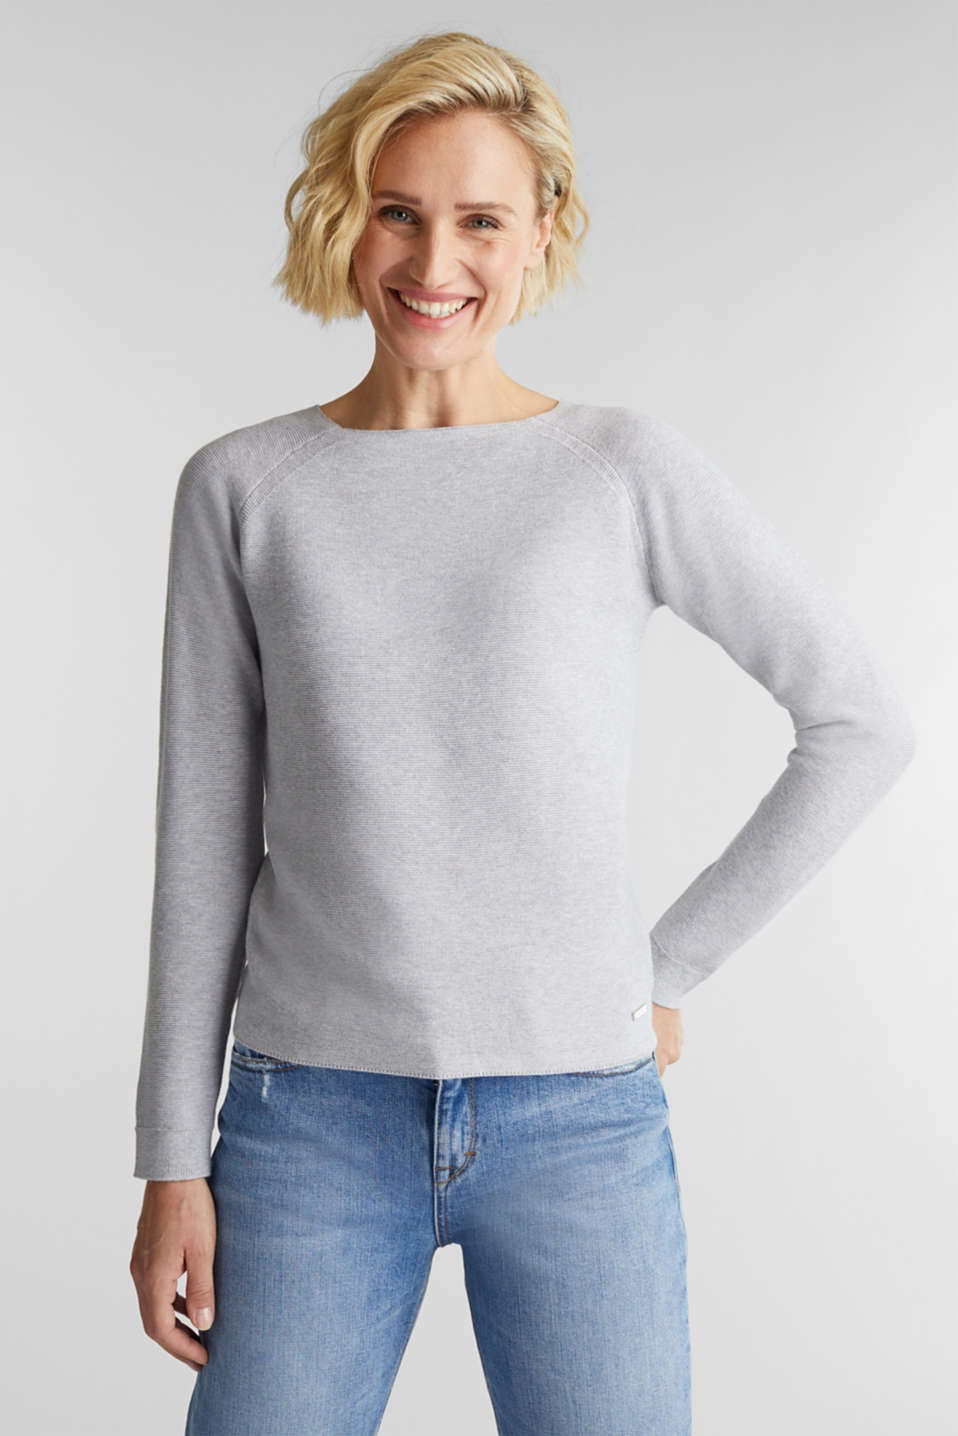 Esprit - Crewneck jumper with 100% organic cotton